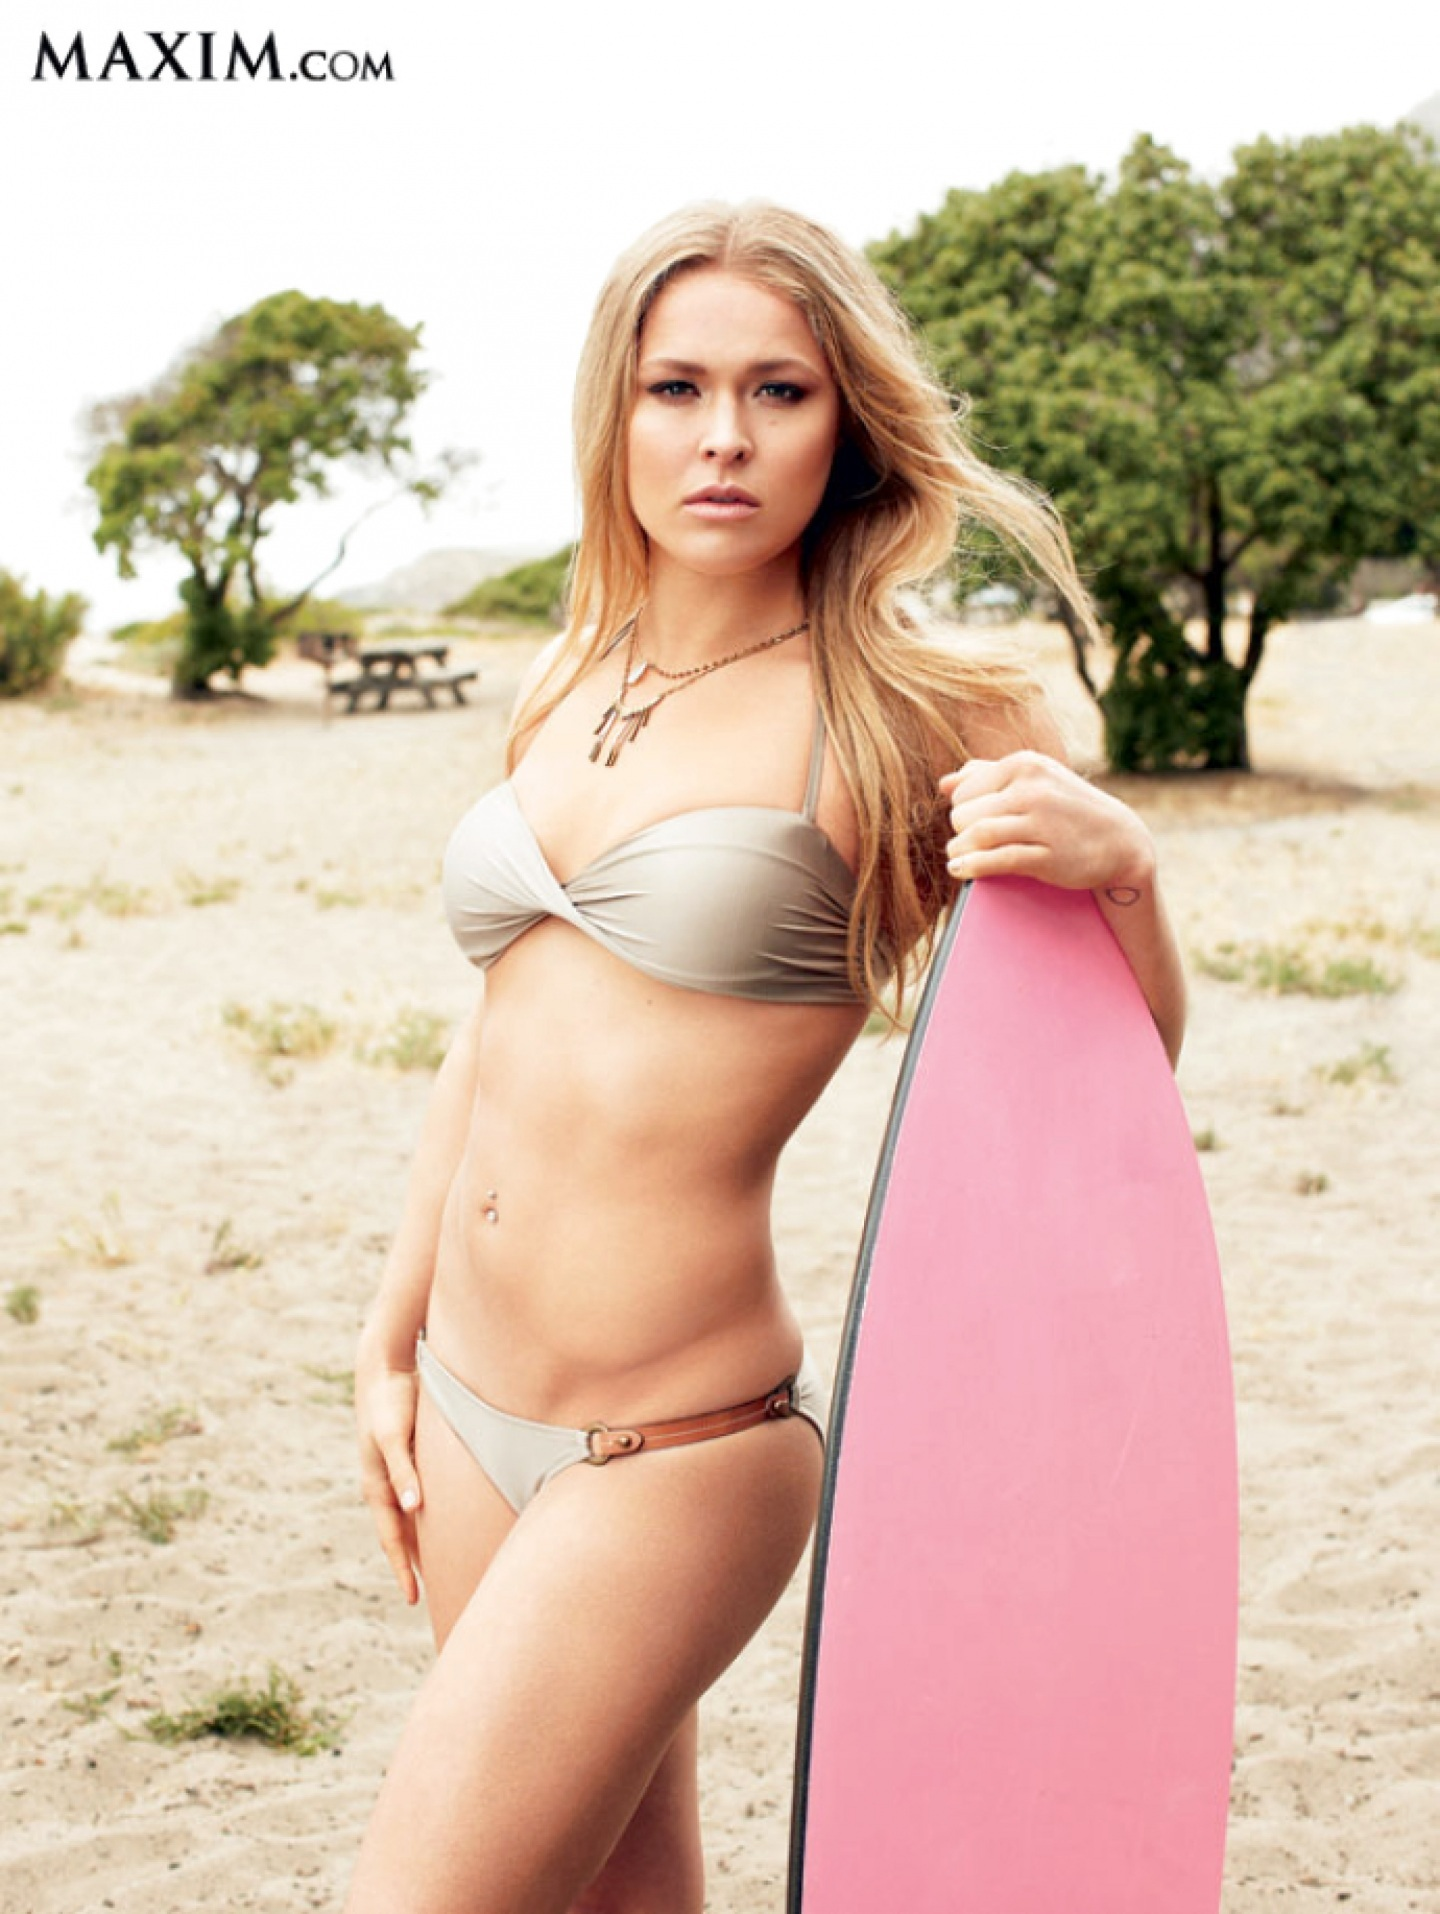 Hot Ufc Girl Ronda Rousey Bikini Pictures Celebrity Stomach